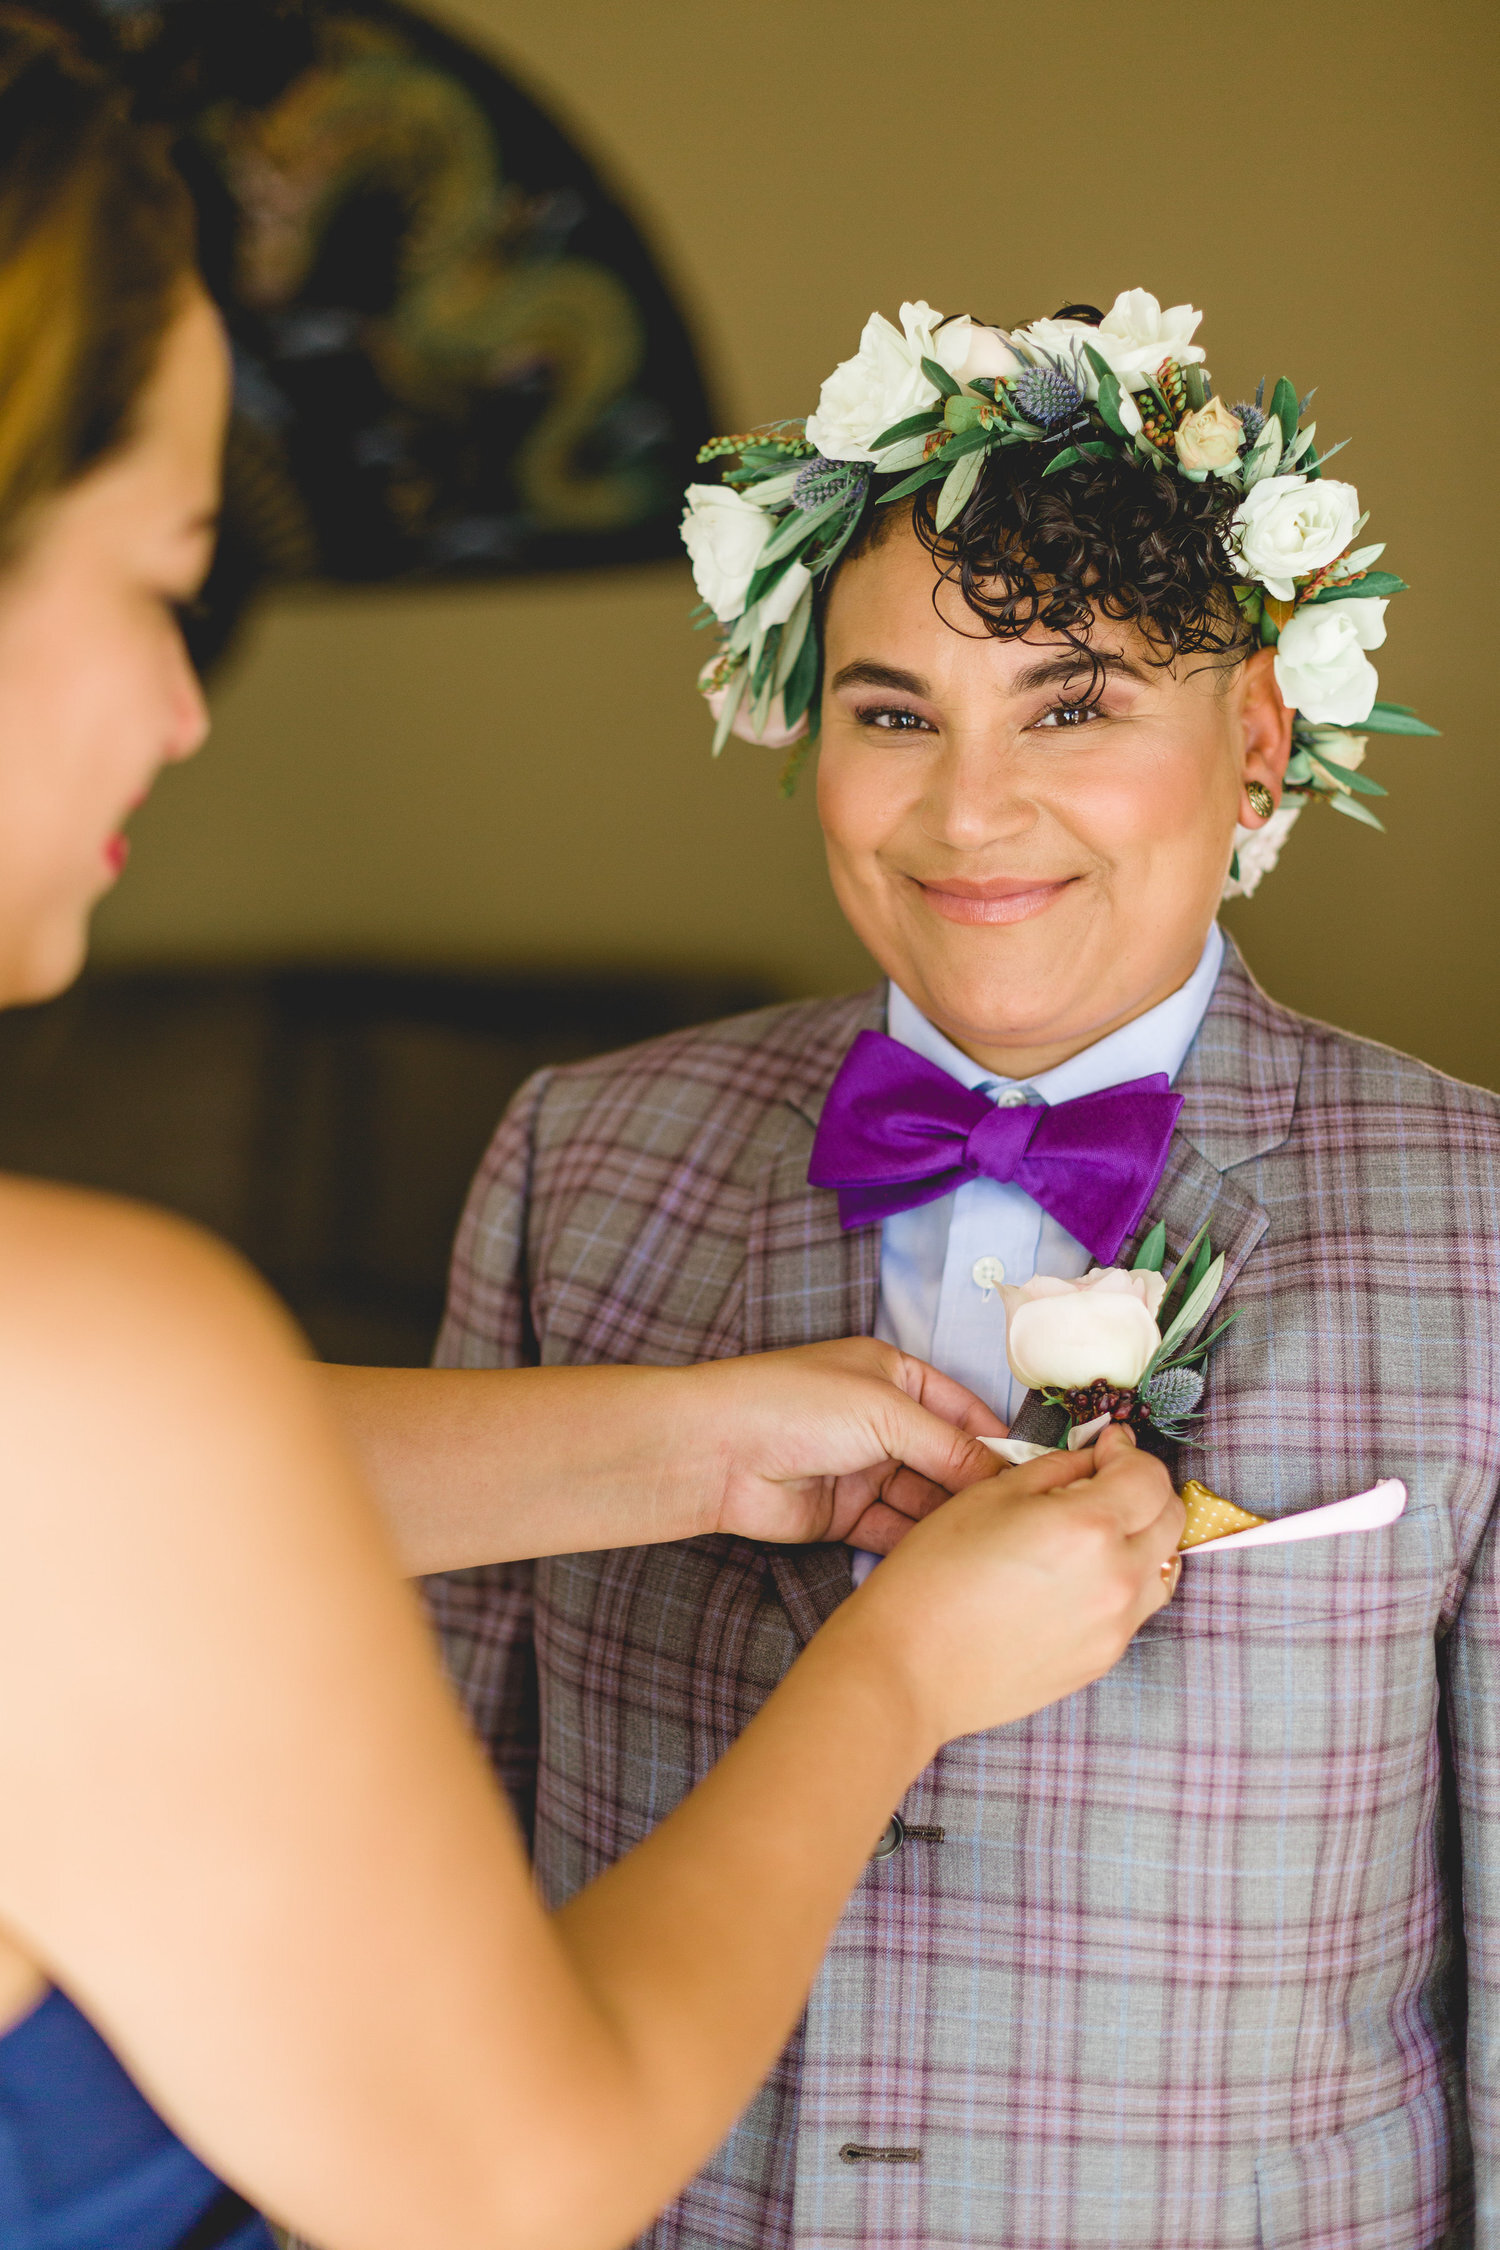 roz getting ready in suit and flower crown before wedding ceremony at redwoods sanctuary in California